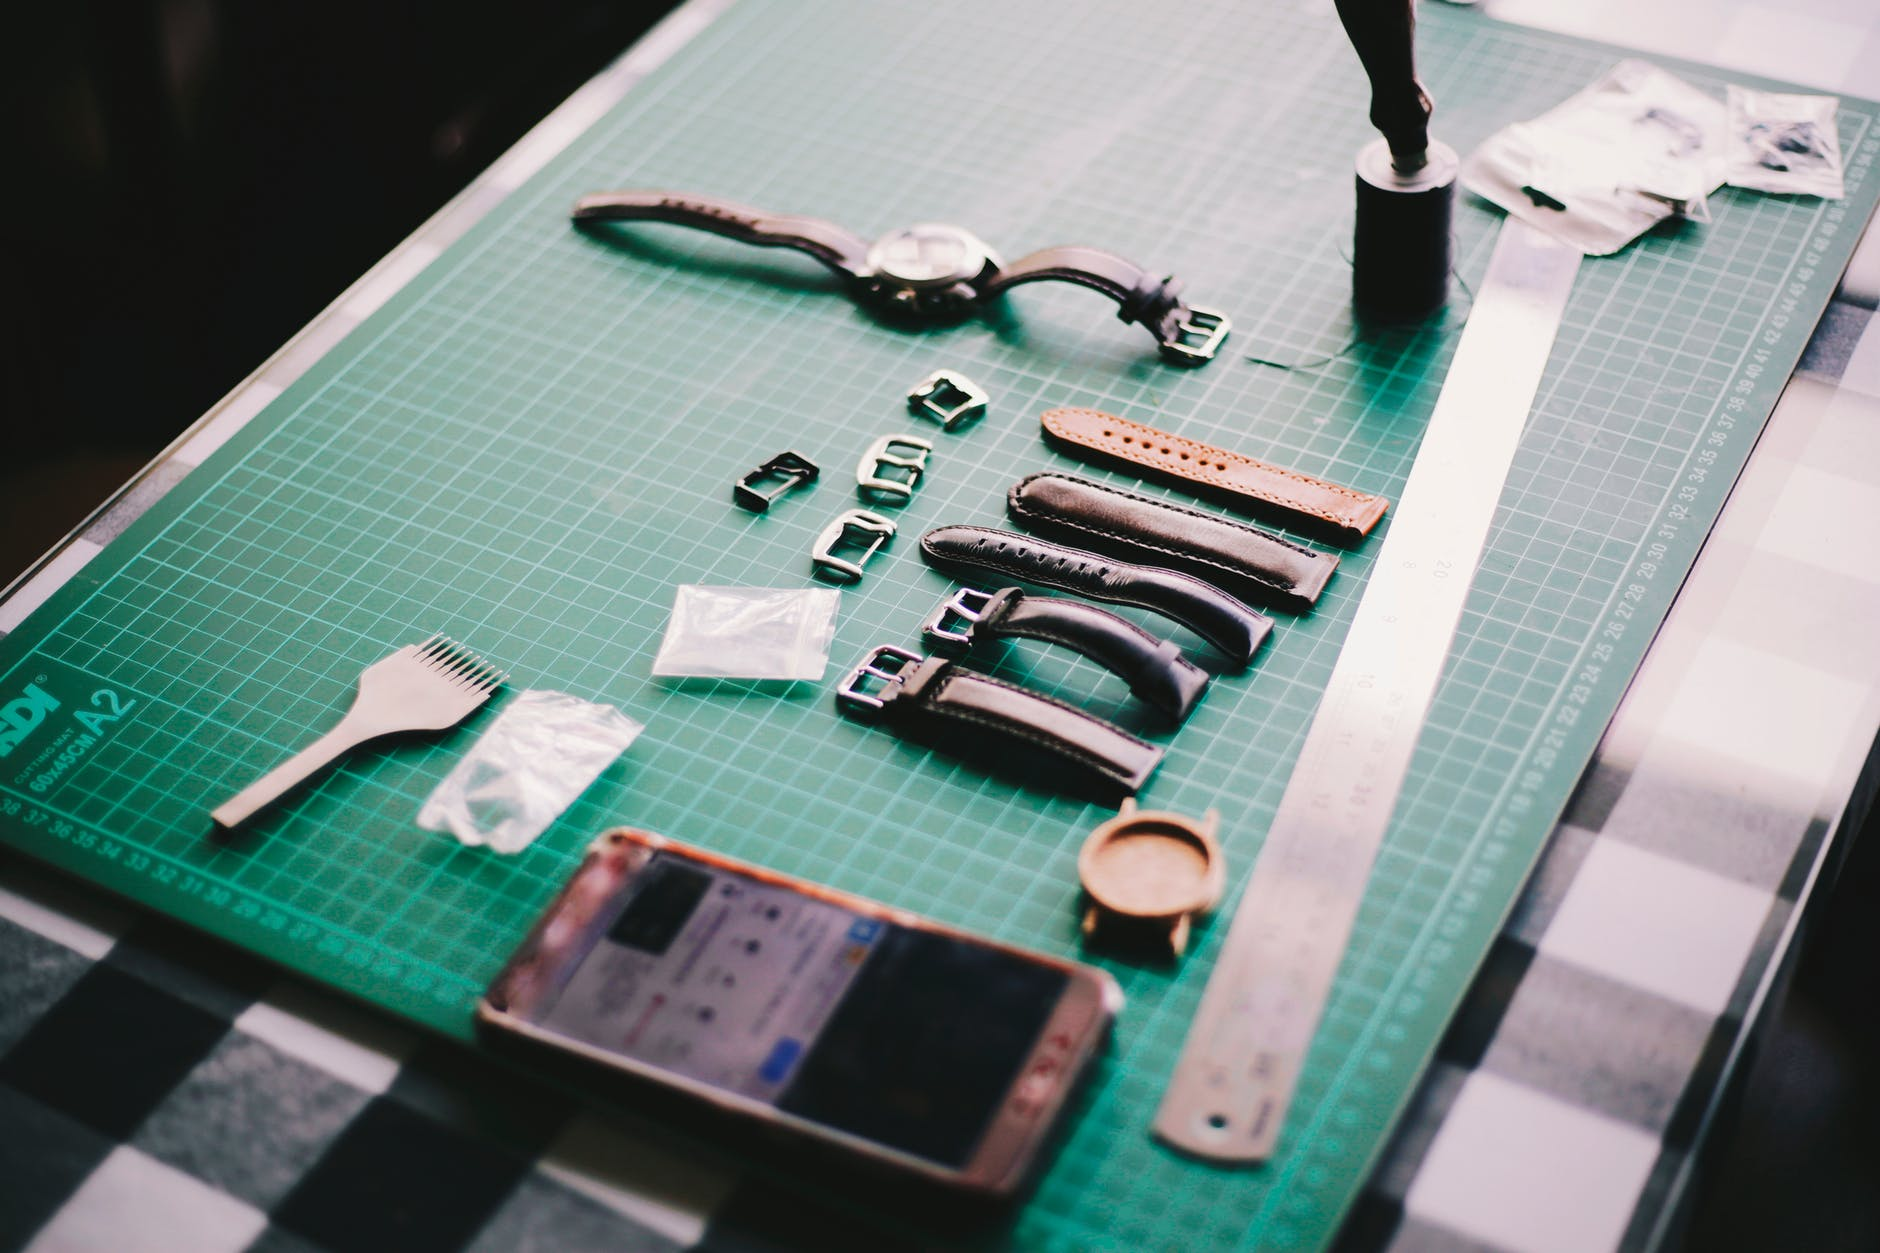 Tools You Should Have for a Watch Repair Kit